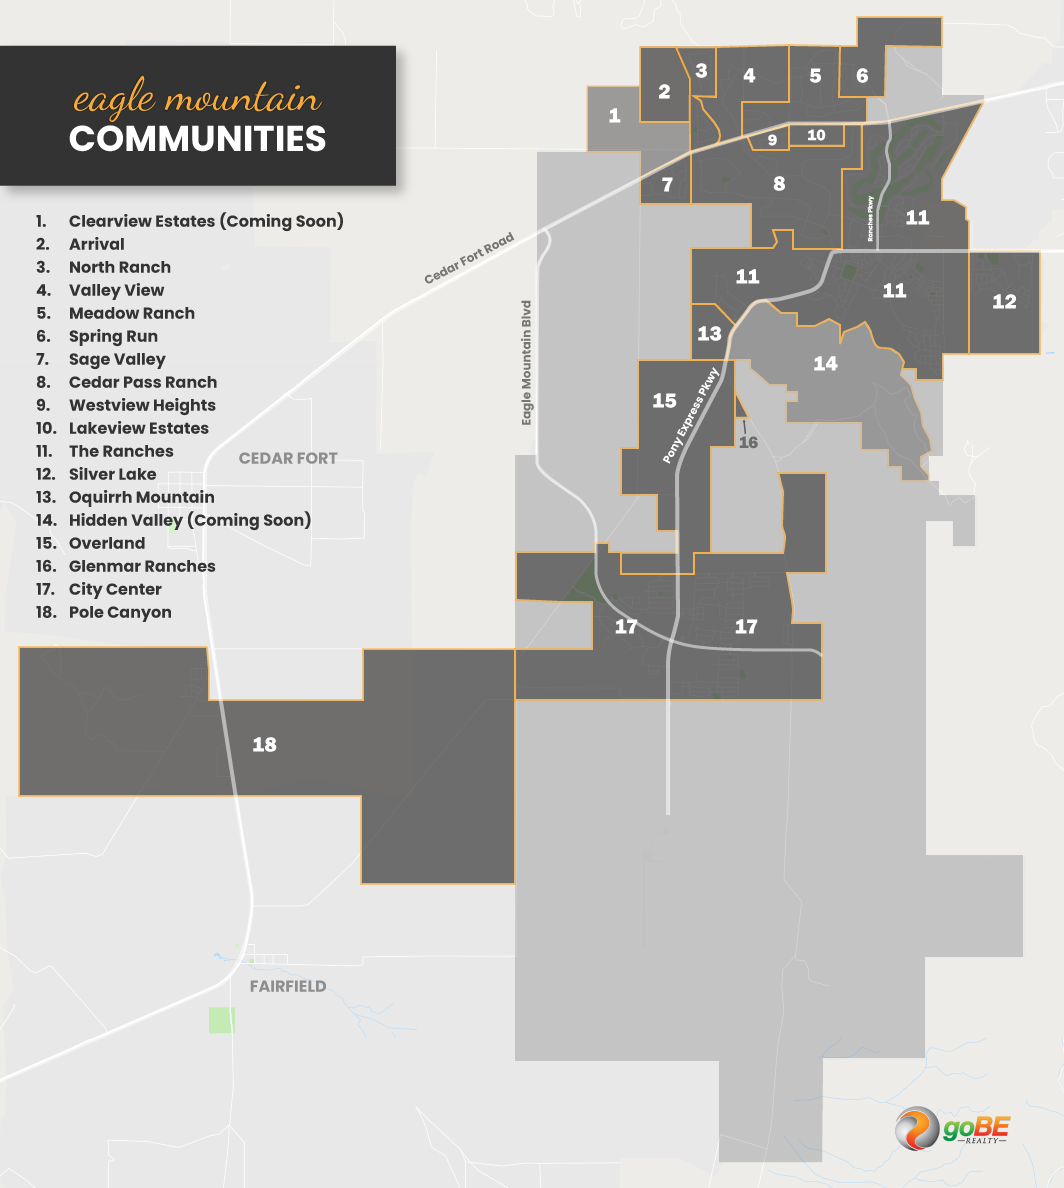 Eagle Mountain Community Map